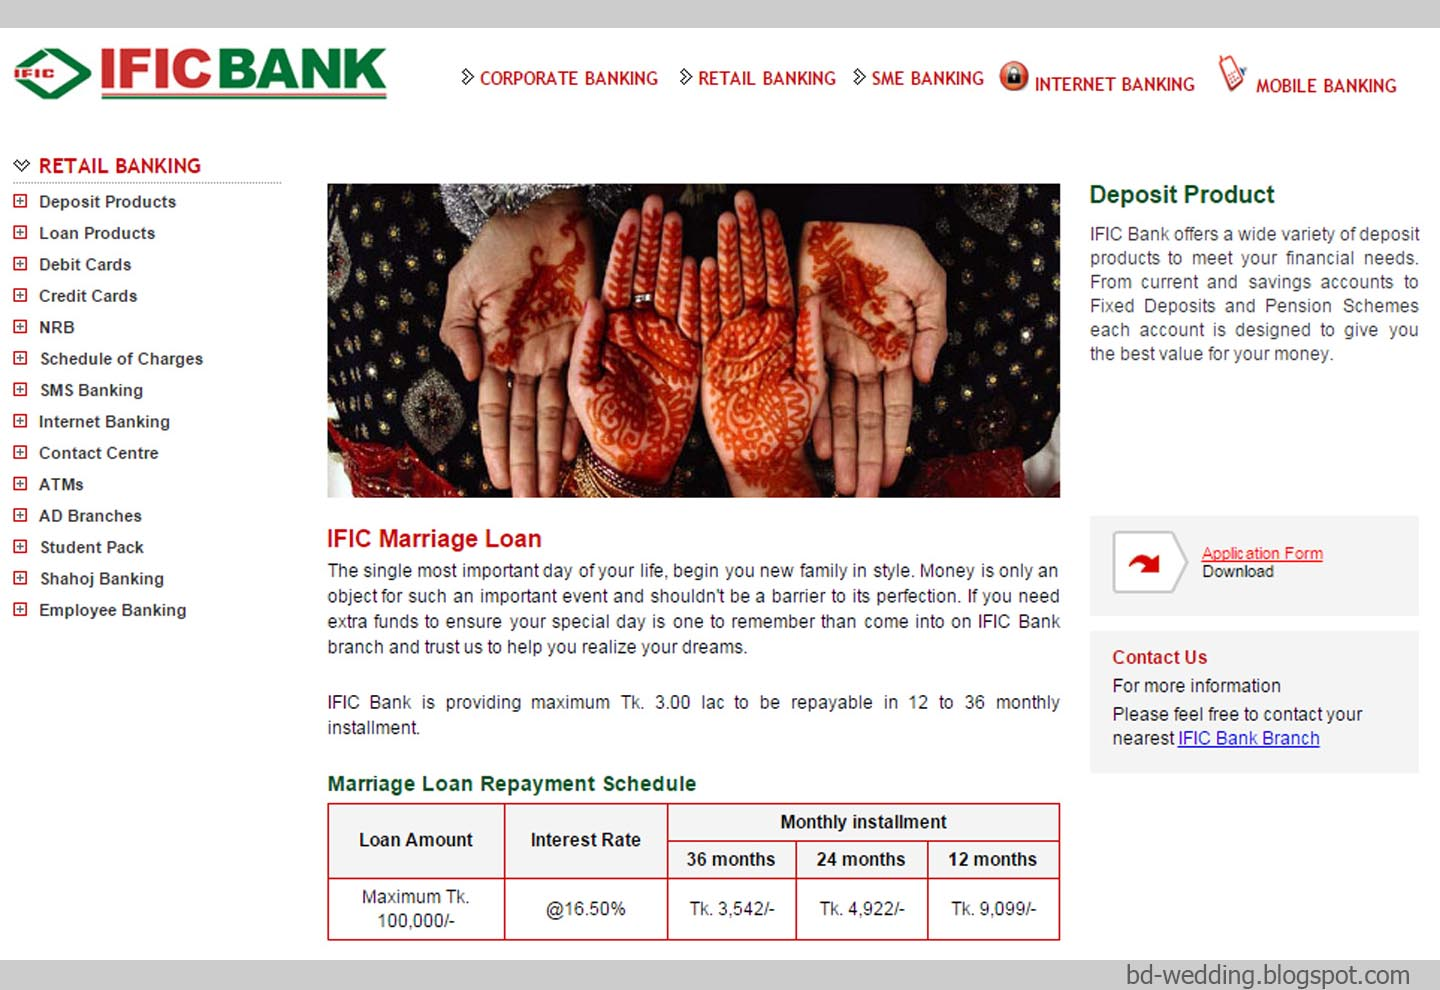 easy marriage loan for bangladeshi wedding loans This is a picture taken from a bank s website here showing information about wedding loans